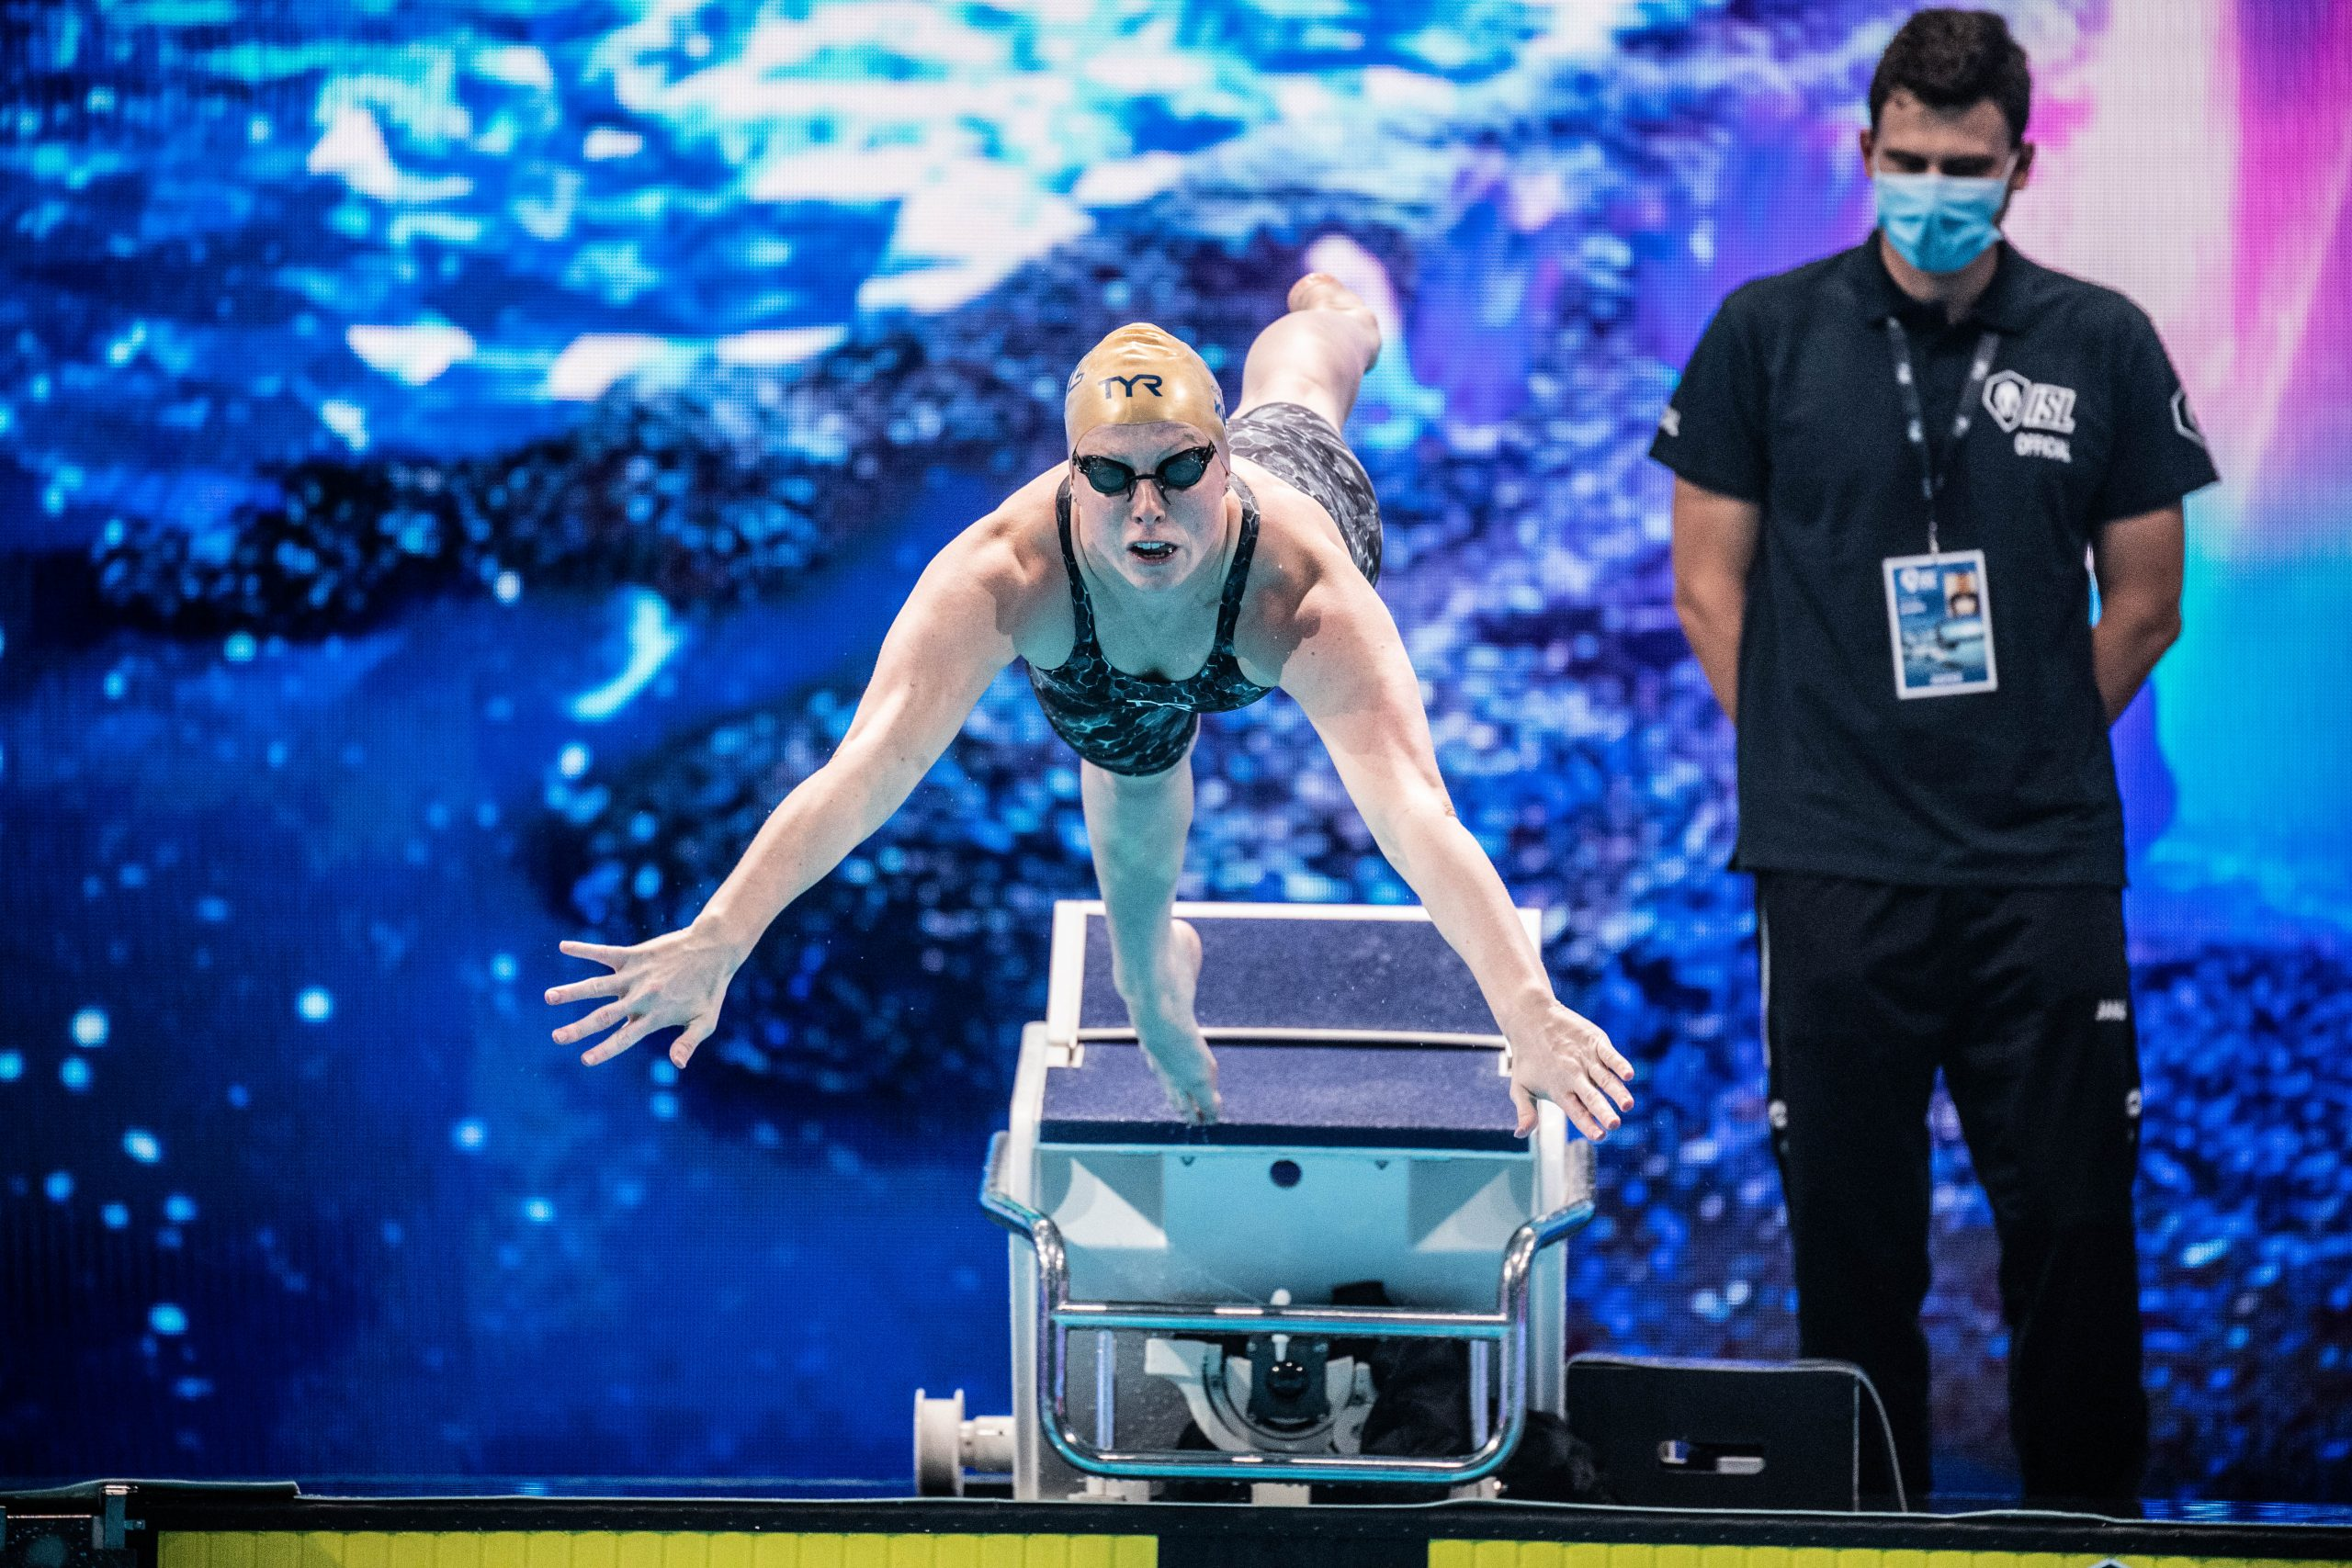 Lilly King Cali Condors ISLby Mike Lewis